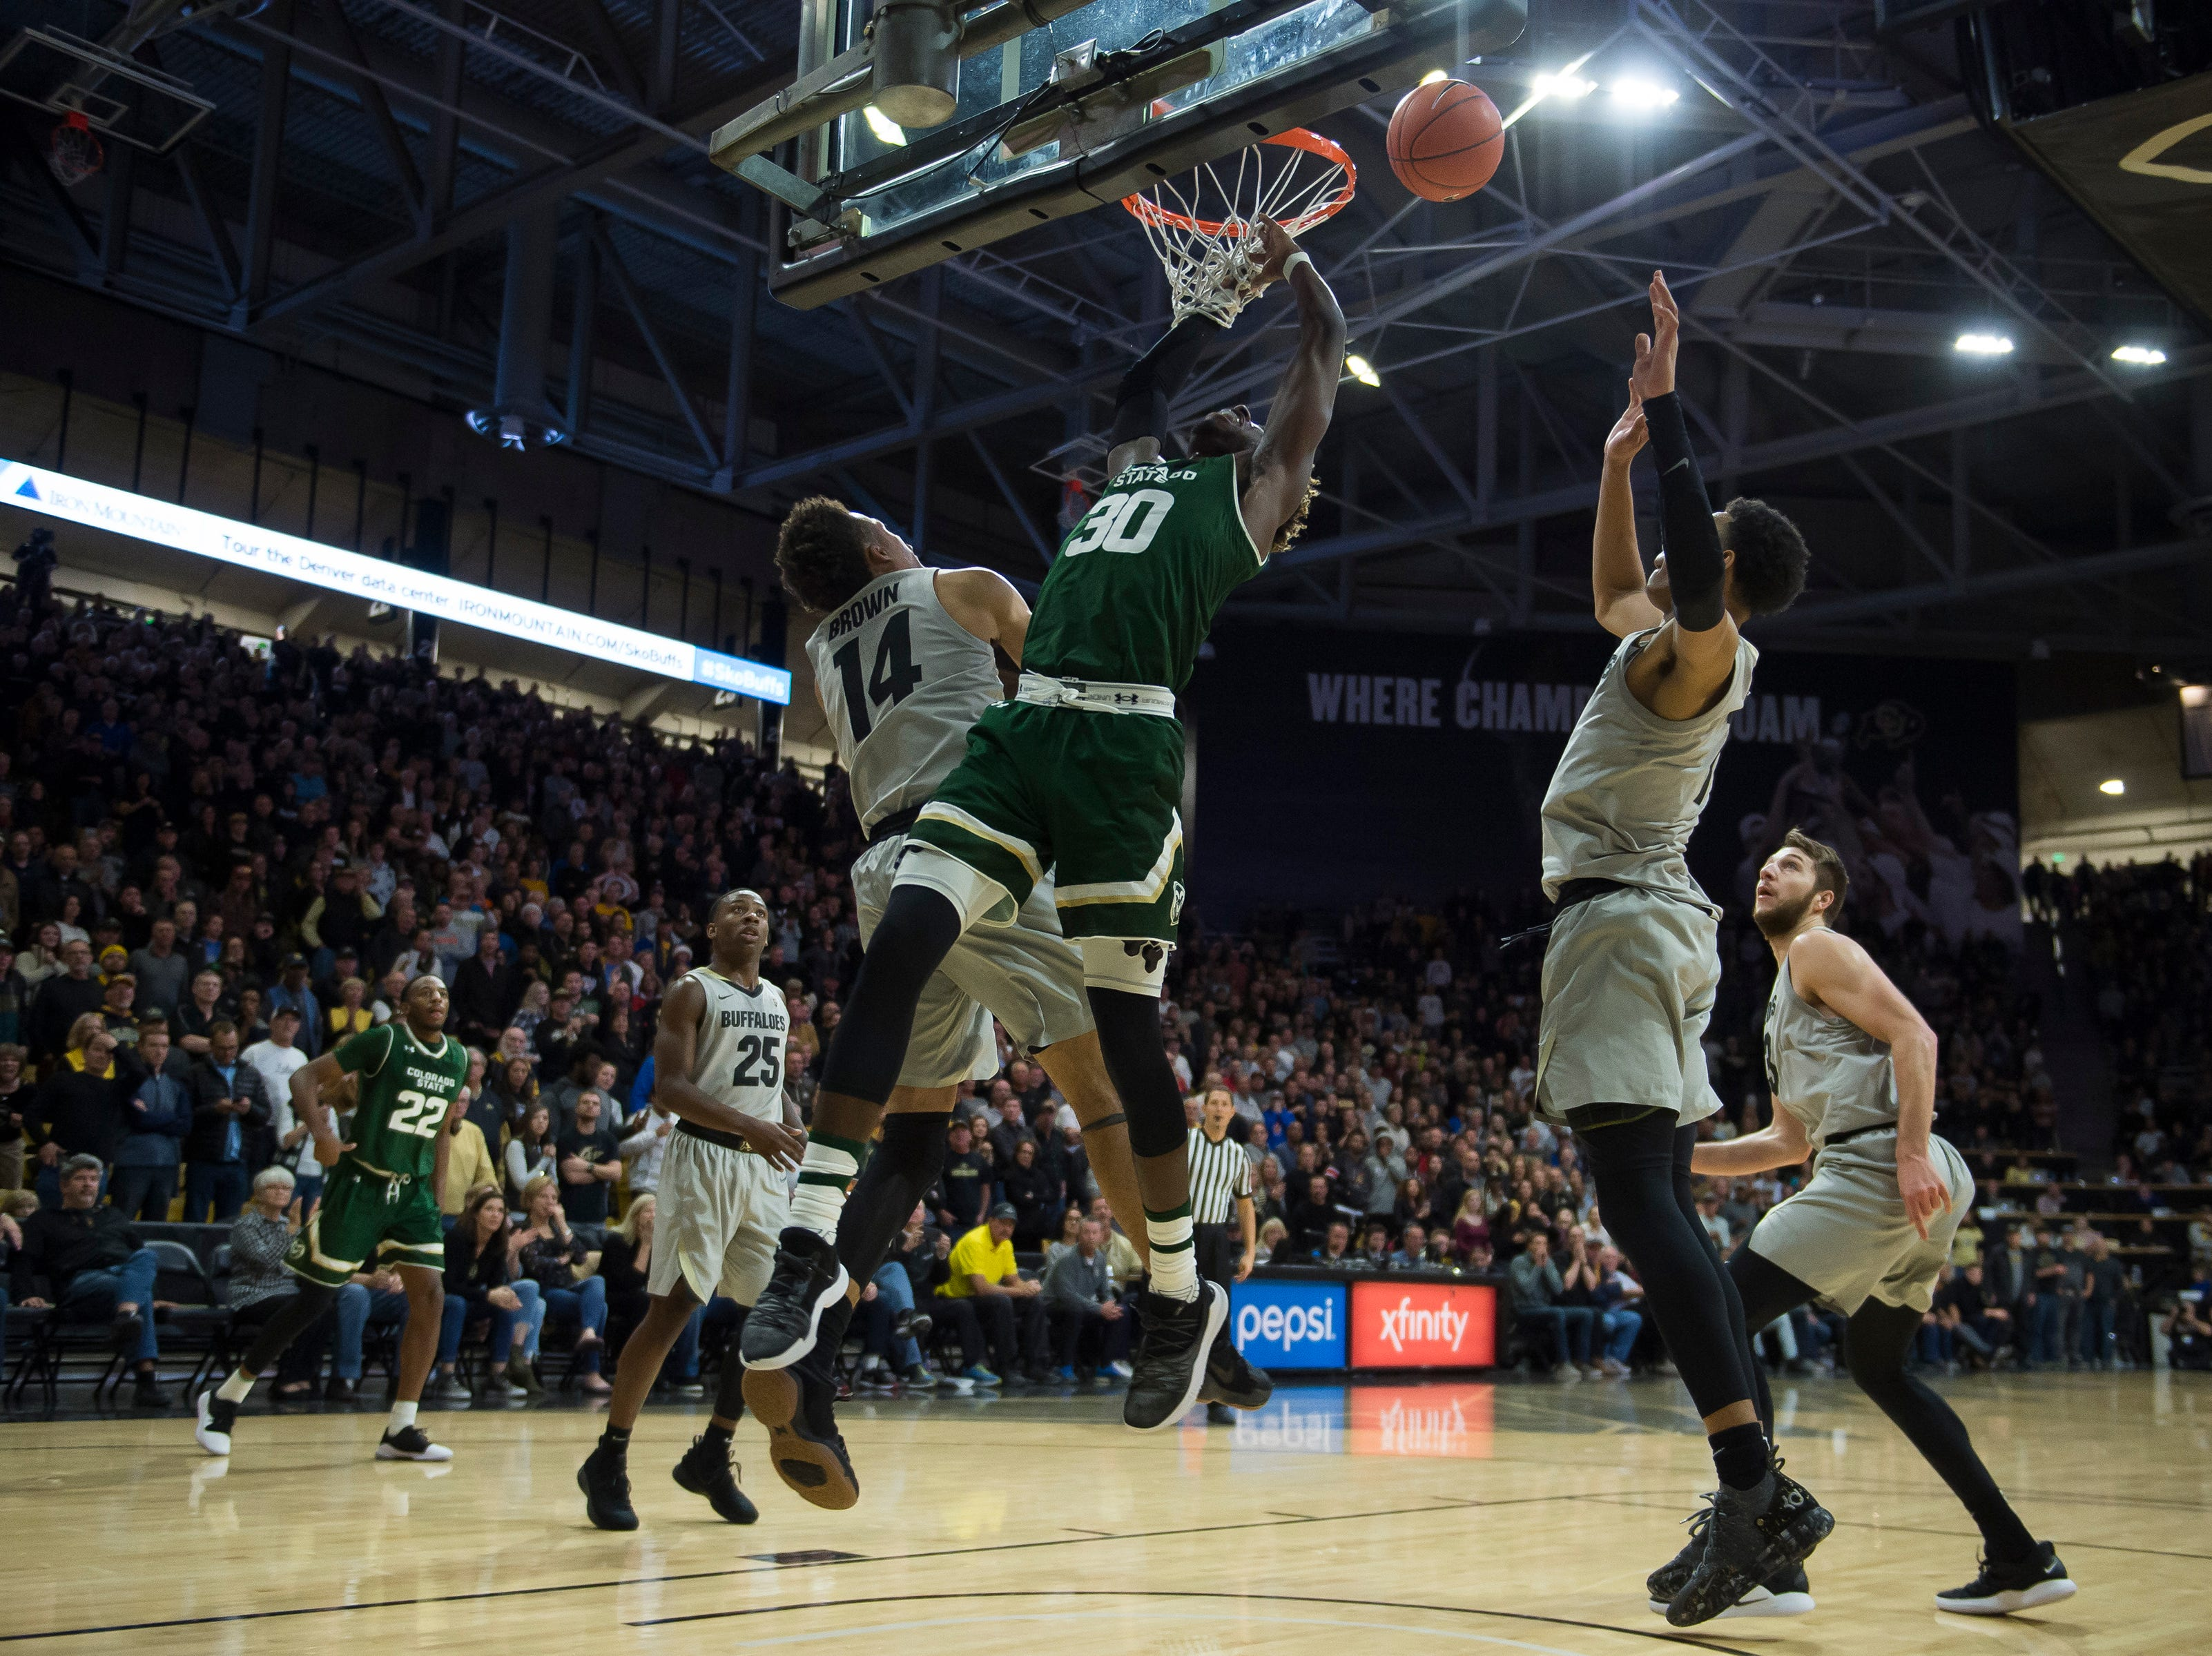 Colorado State University junior guard Kris Martin (30) misses a dunk and is fouled during a game against the University of Colorado on Saturday, Dec. 1, 2018, at the CU Event Center in Boulder, Colo.